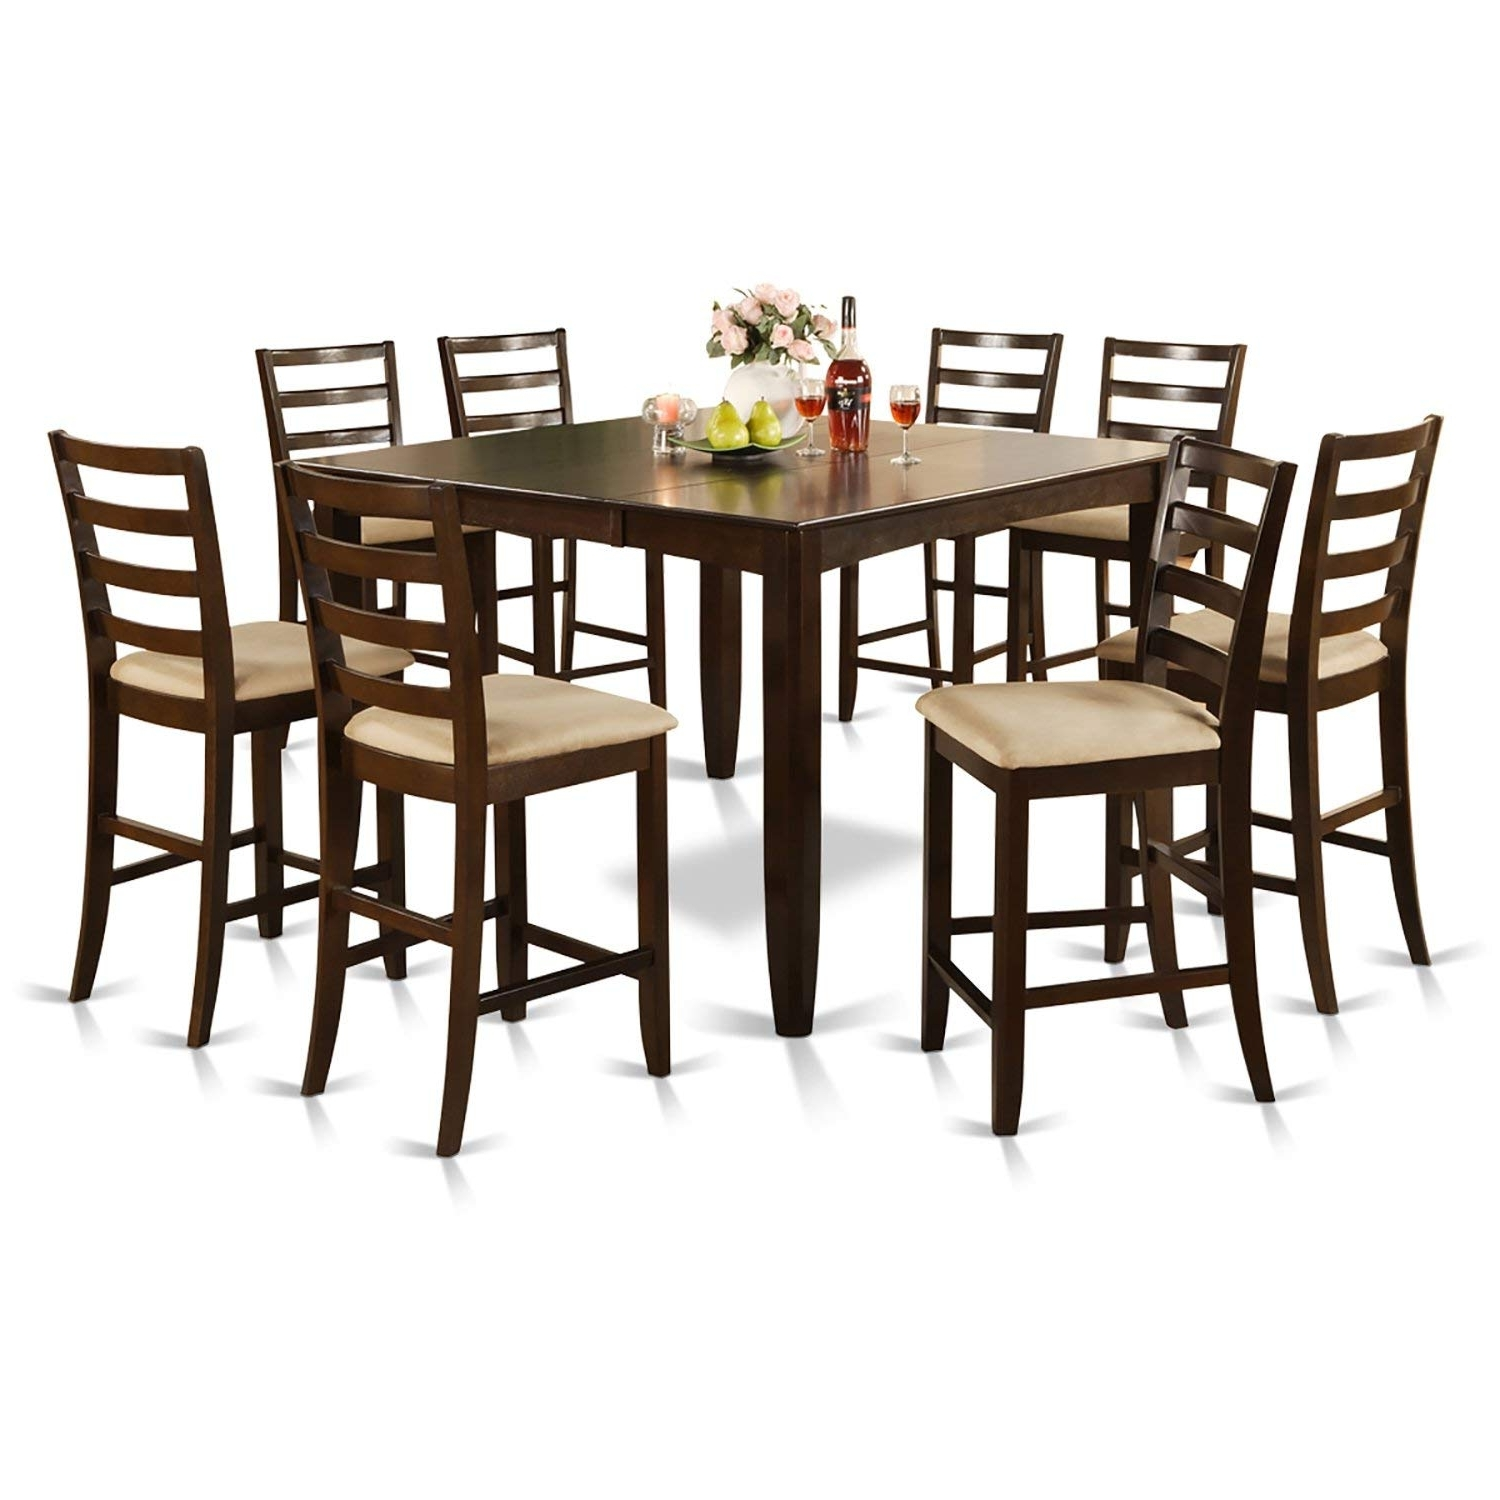 Rocco 7 Piece Extension Dining Sets Throughout Fashionable Amazon: East West Furniture Fair9 Cap C 9 Piece Counter Height (View 9 of 25)